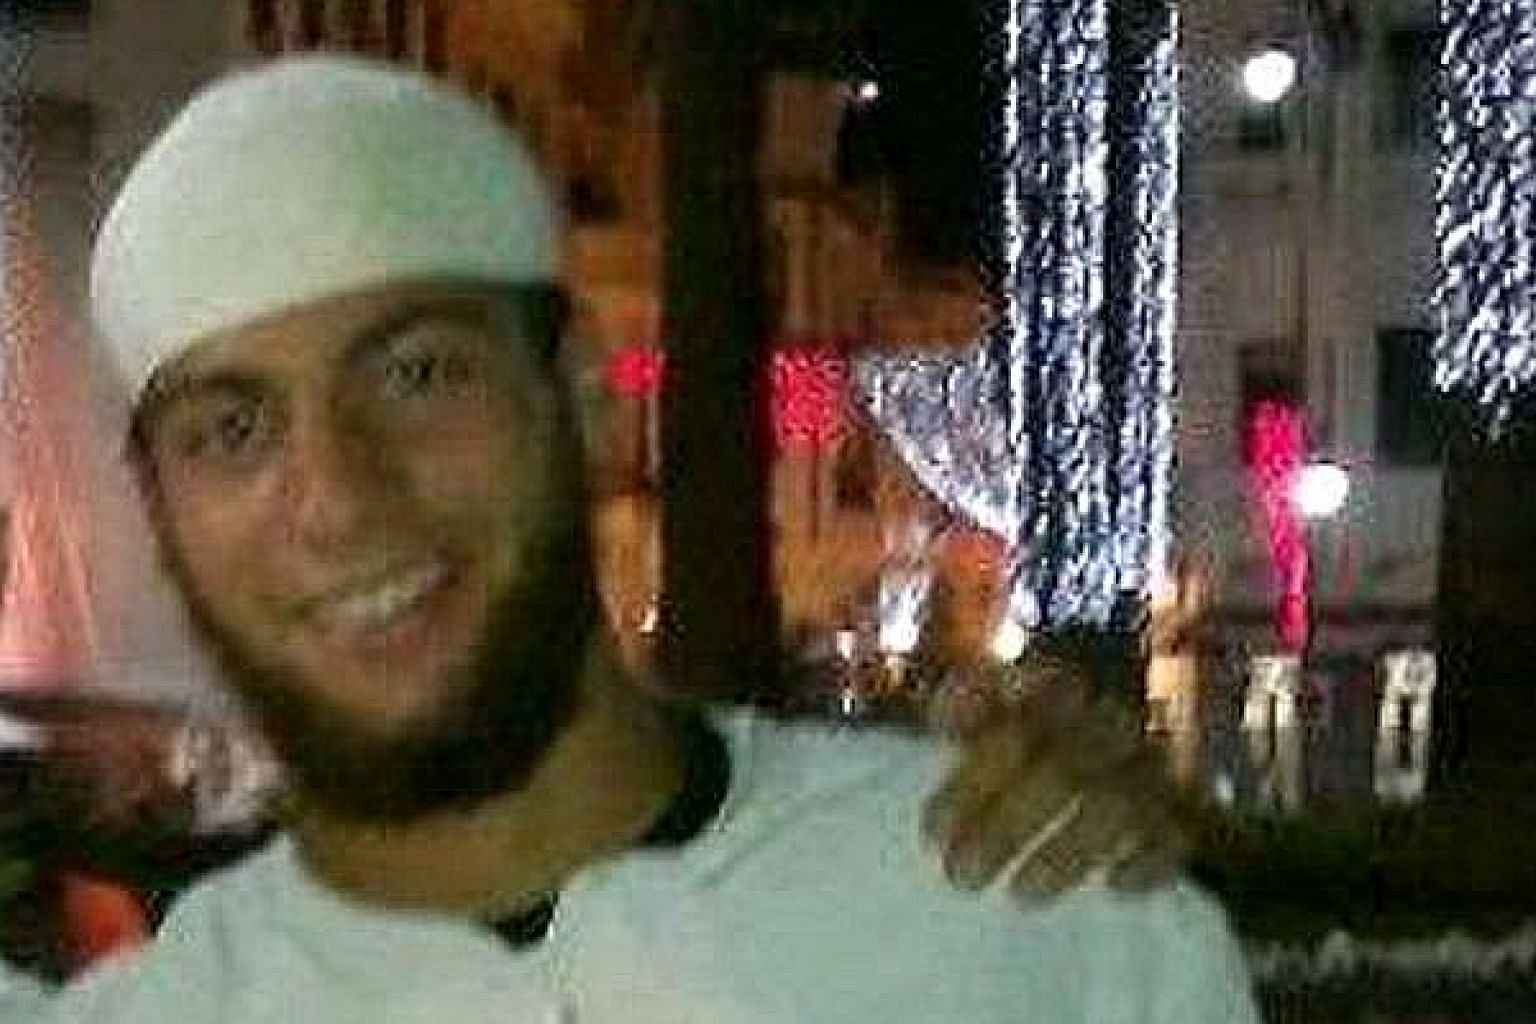 French officials are questioning Moroccan national Ayoub El Khazzani (abpve) over the attack on the train last Friday. US Air Force serviceman Spencer Stone was hurt while helping to overpower the gunman.